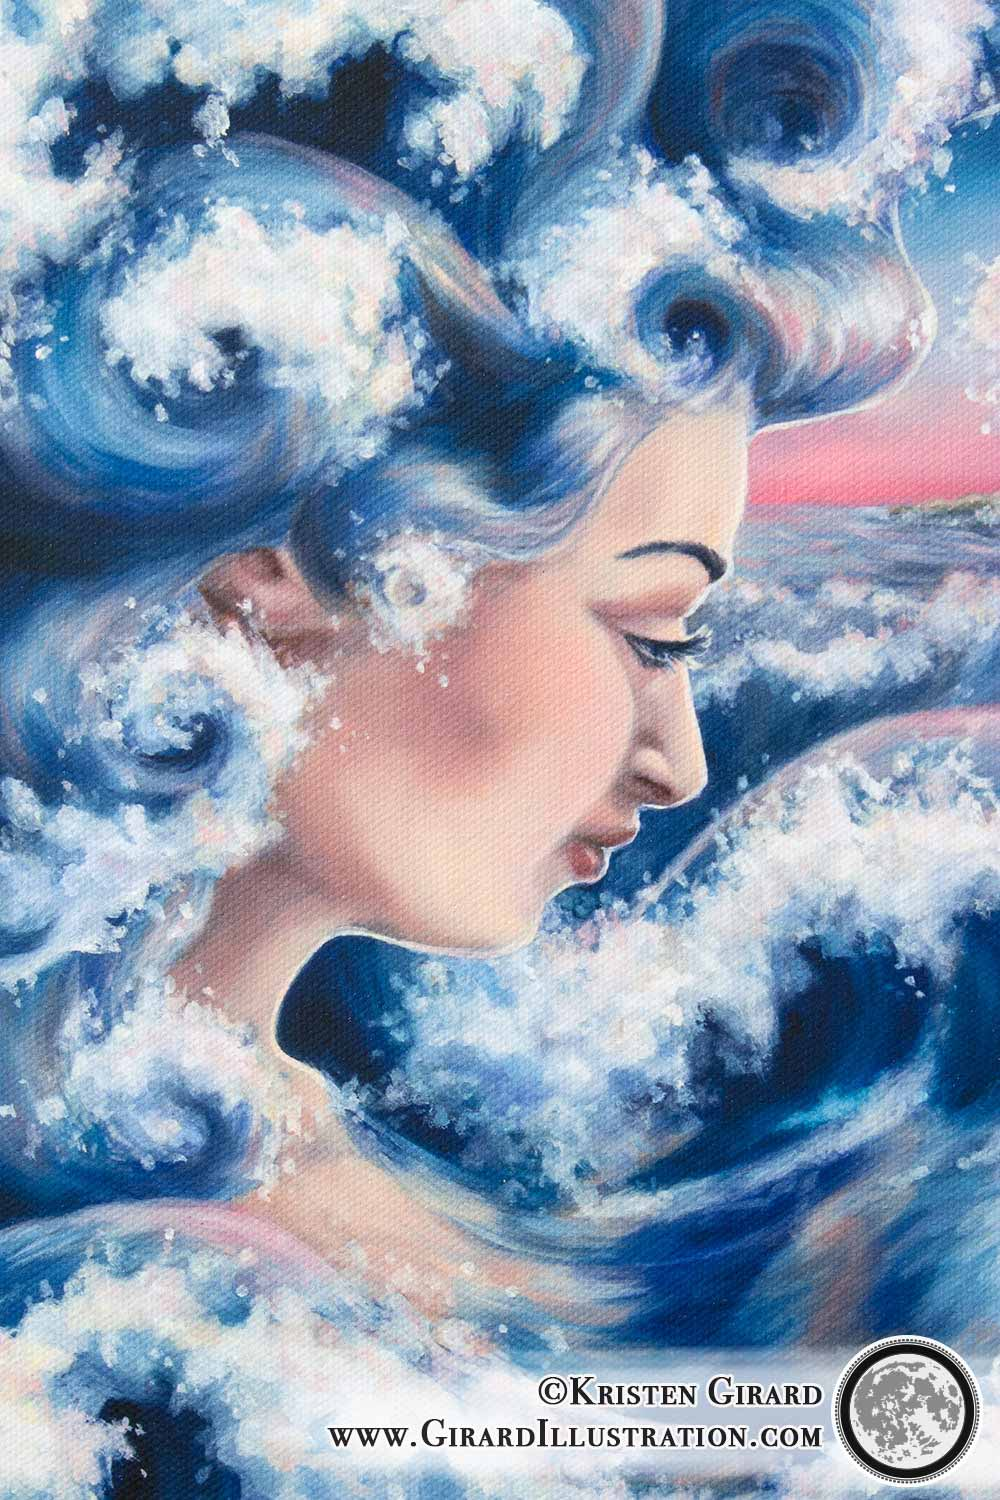 Dawn rises as a goddess is rising up out of the ocean. Her skin is rosy with the dawn and her hair is formed of blue curling waves that reflect the fresh pink of the sky. Water Magic © Kristen Girard. Detail.